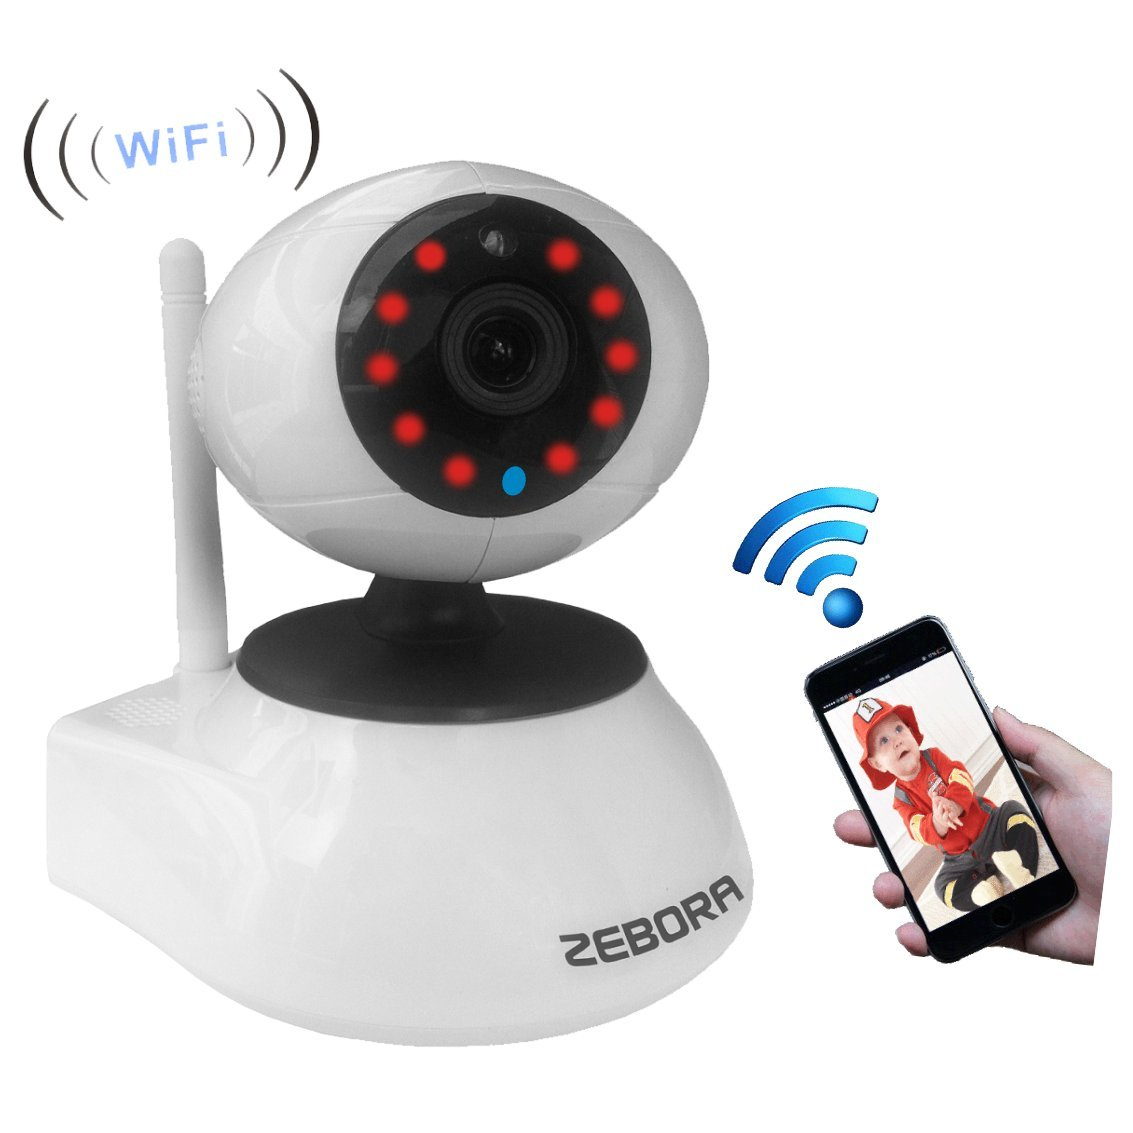 ZEBORA® Baby Monitor, Through Free Mobil App Super HD 960P Internet WiFi Wireless Network IP Security Surveillance Video Camera, Pet, Nanny Monitor MicroSD Recordable with Pan and Tilt, Two Way Audio & Night Vision ZEBORA® Baby Monitor ZEBORA GROUP COR